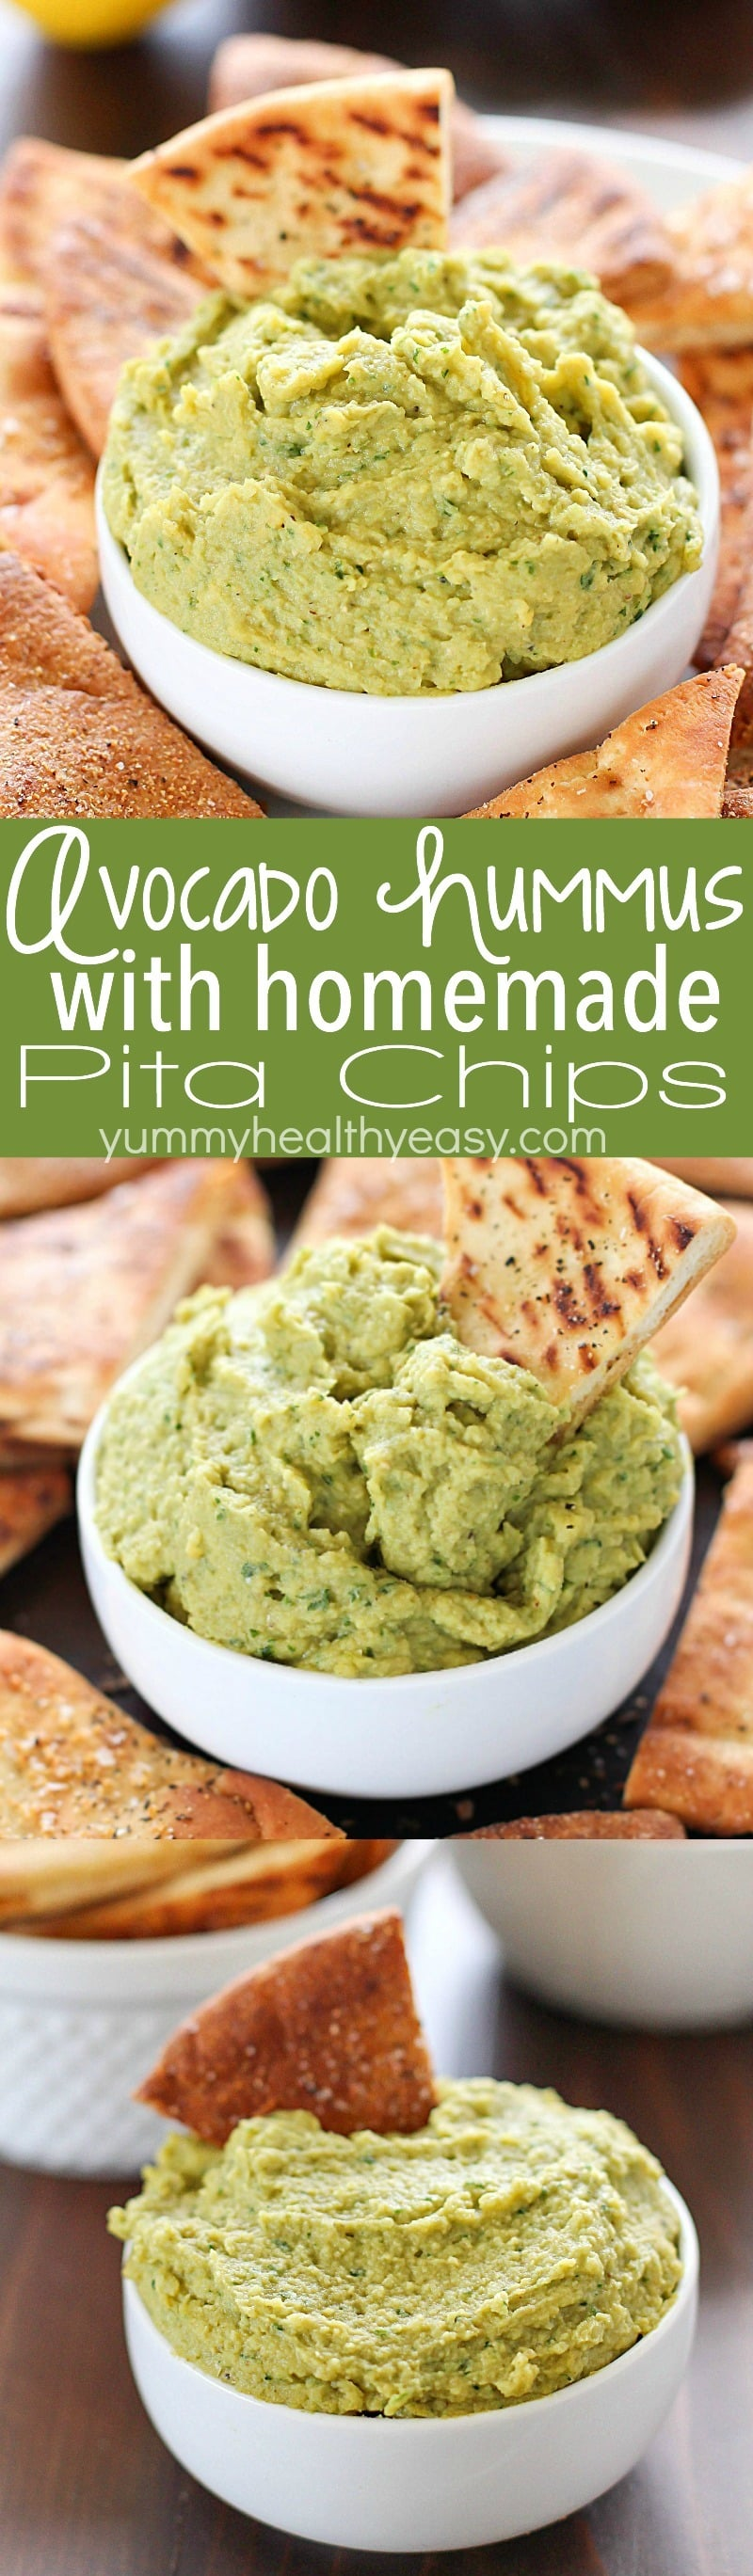 ... easy homemade pita chips, and you have yourself a healthy, flavorful